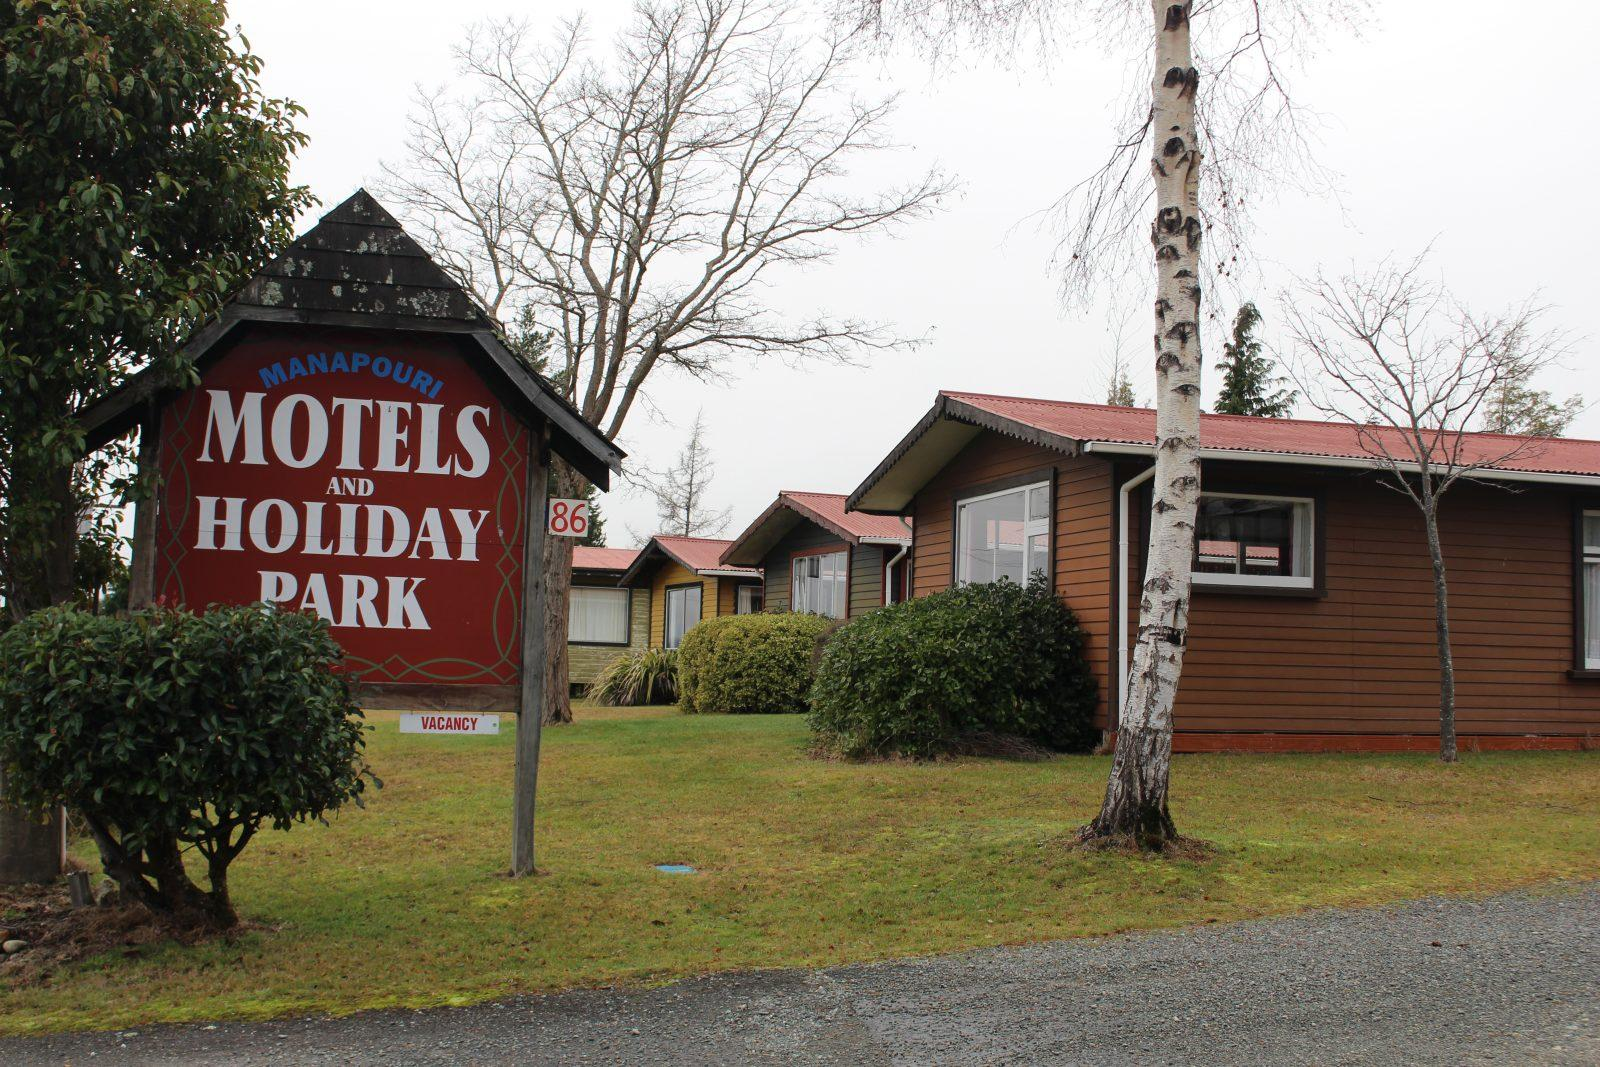 Manapouri Motels & Holiday Park